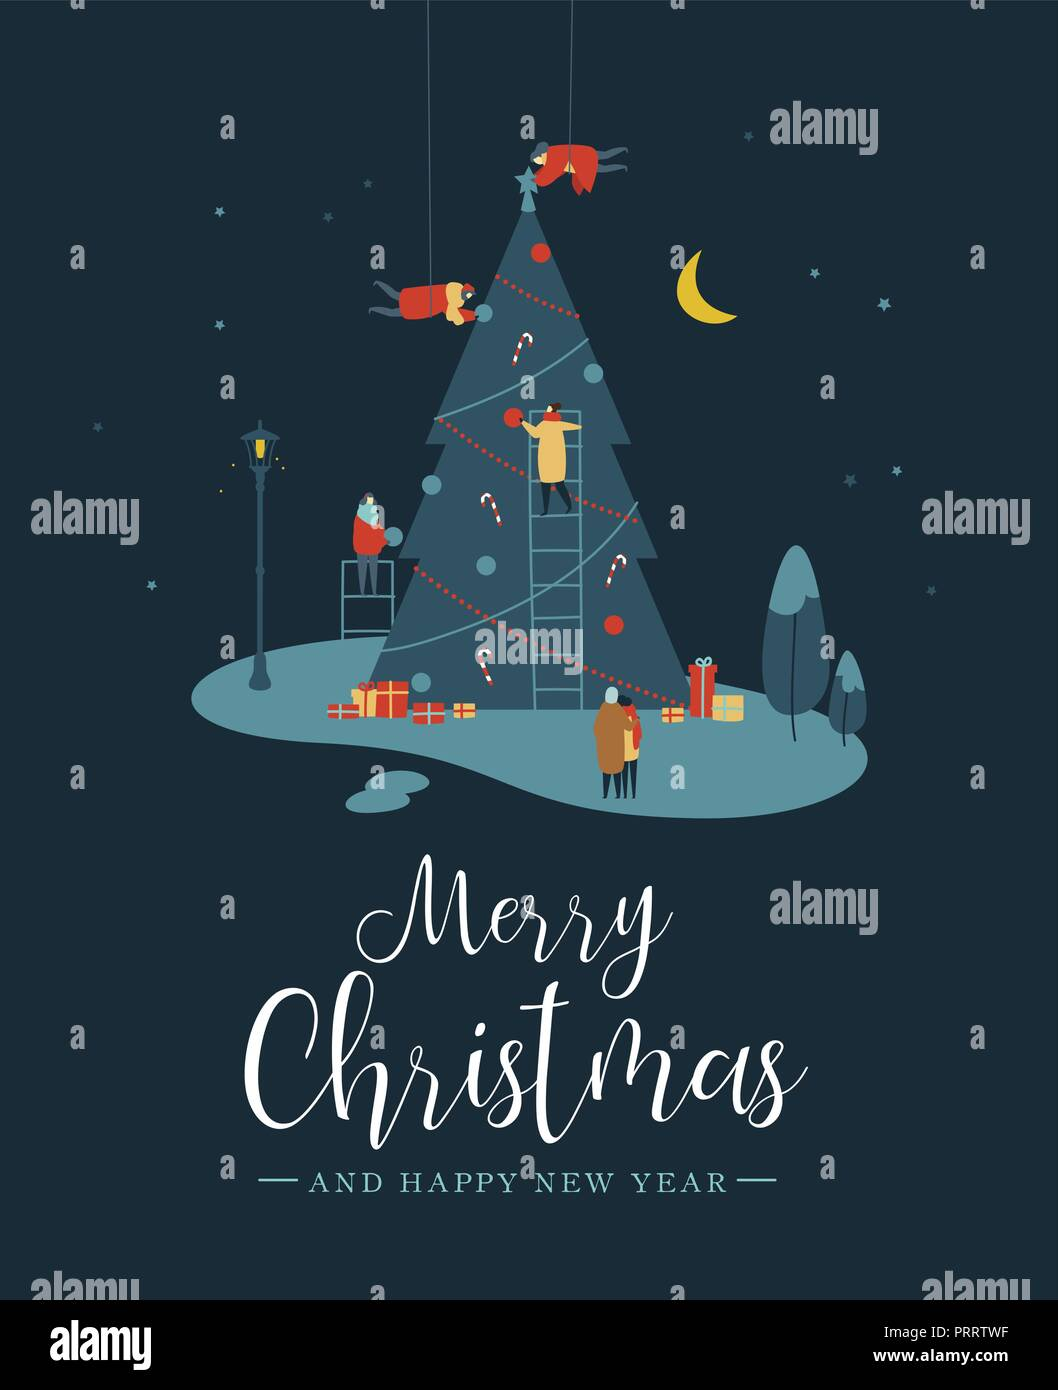 merry christmas and happy new year greeting card people group making big xmas pine tree together for holiday season with ornament decoration gifts at